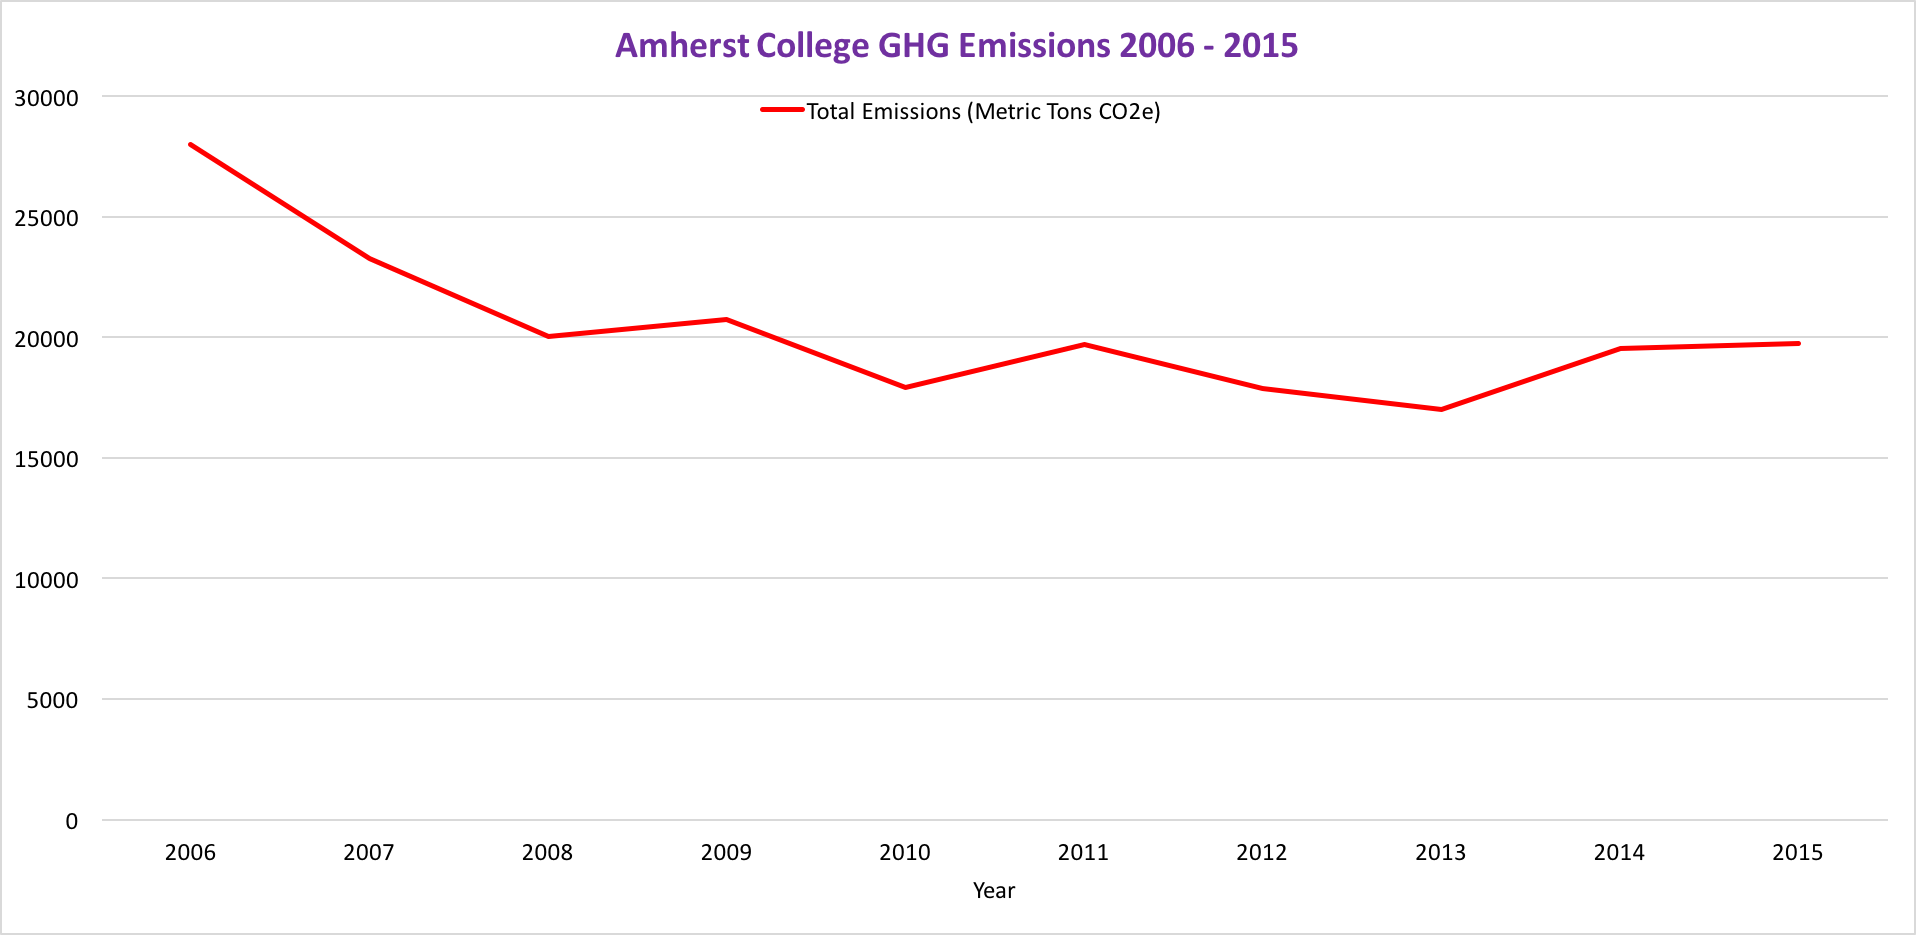 Amherst College GHG Emissions 2006-2015